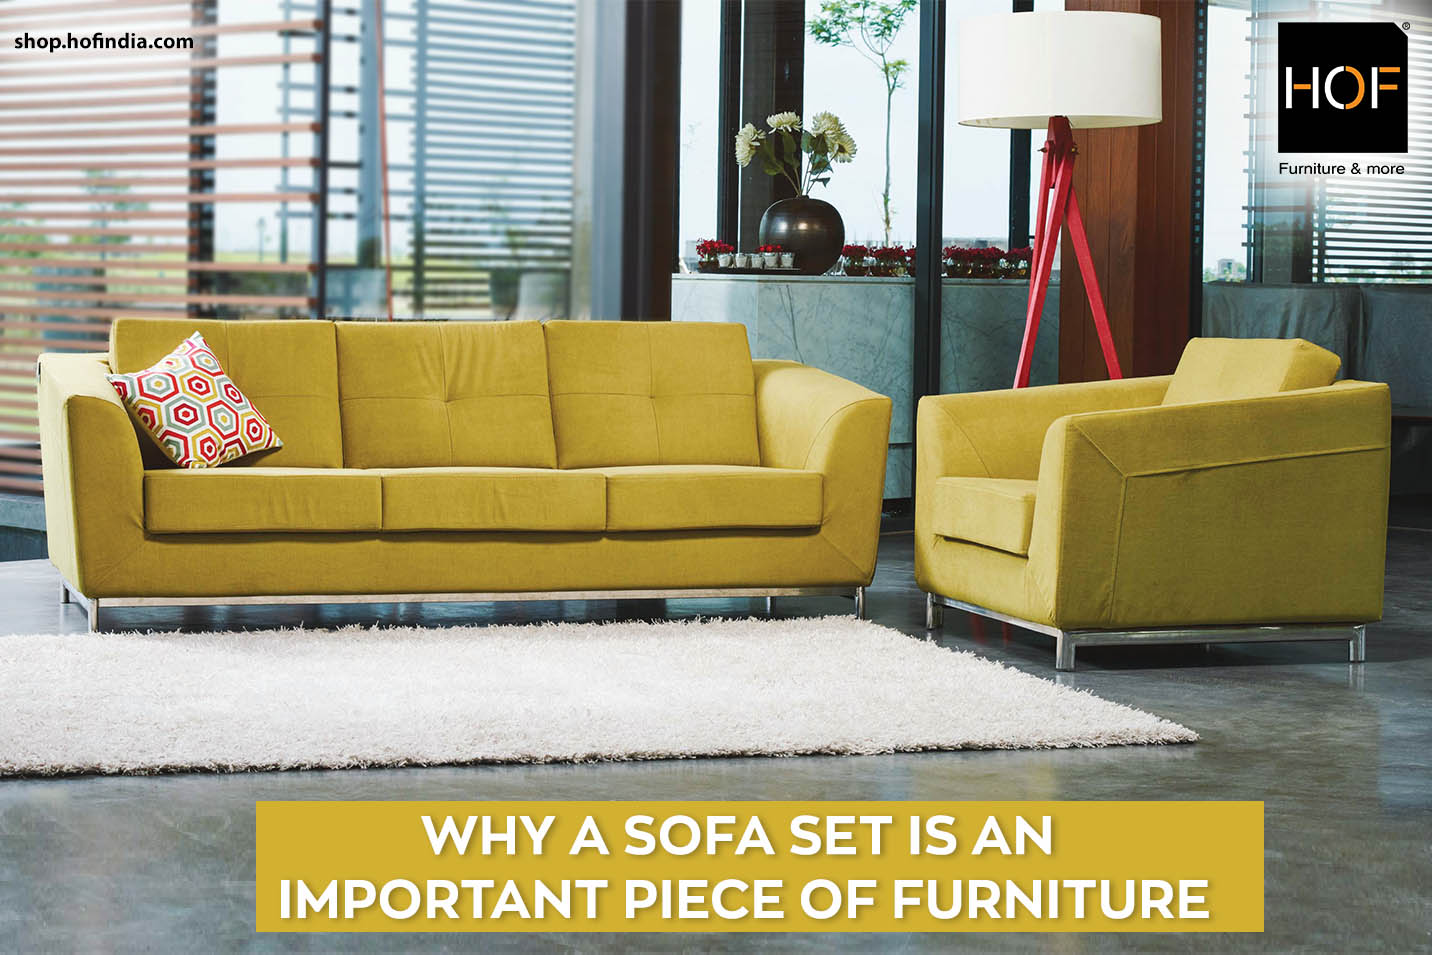 Why A Sofa Set Is An Important Piece Of